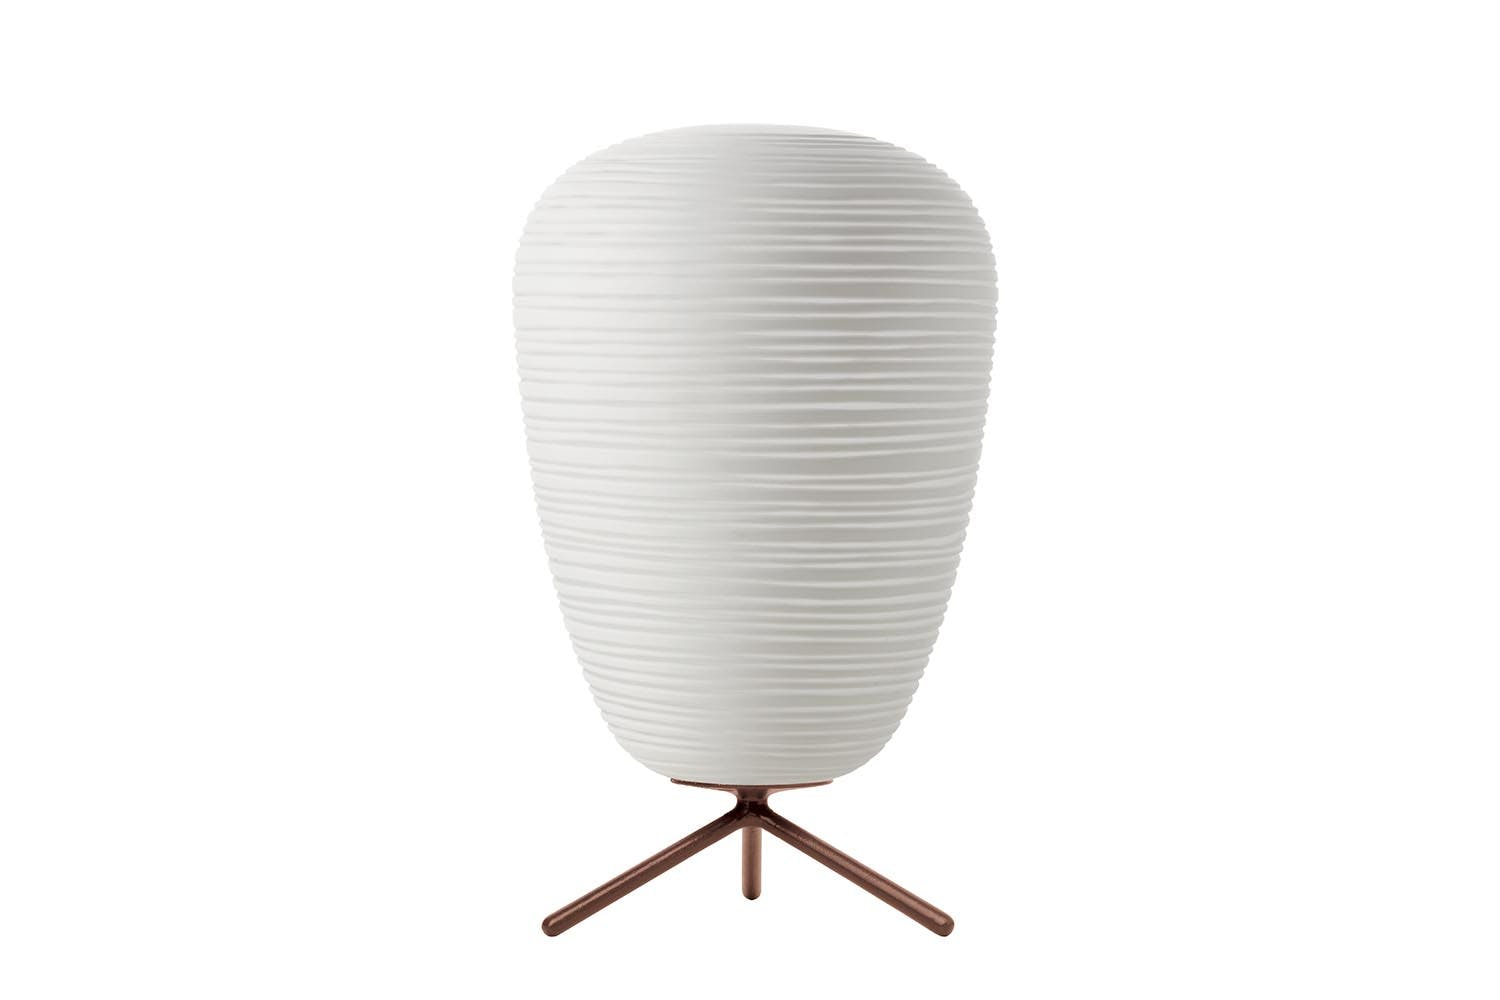 Rituals 1 Table Lamp By Ludovica Amp Roberto Palomba For Foscarini Space Furniture